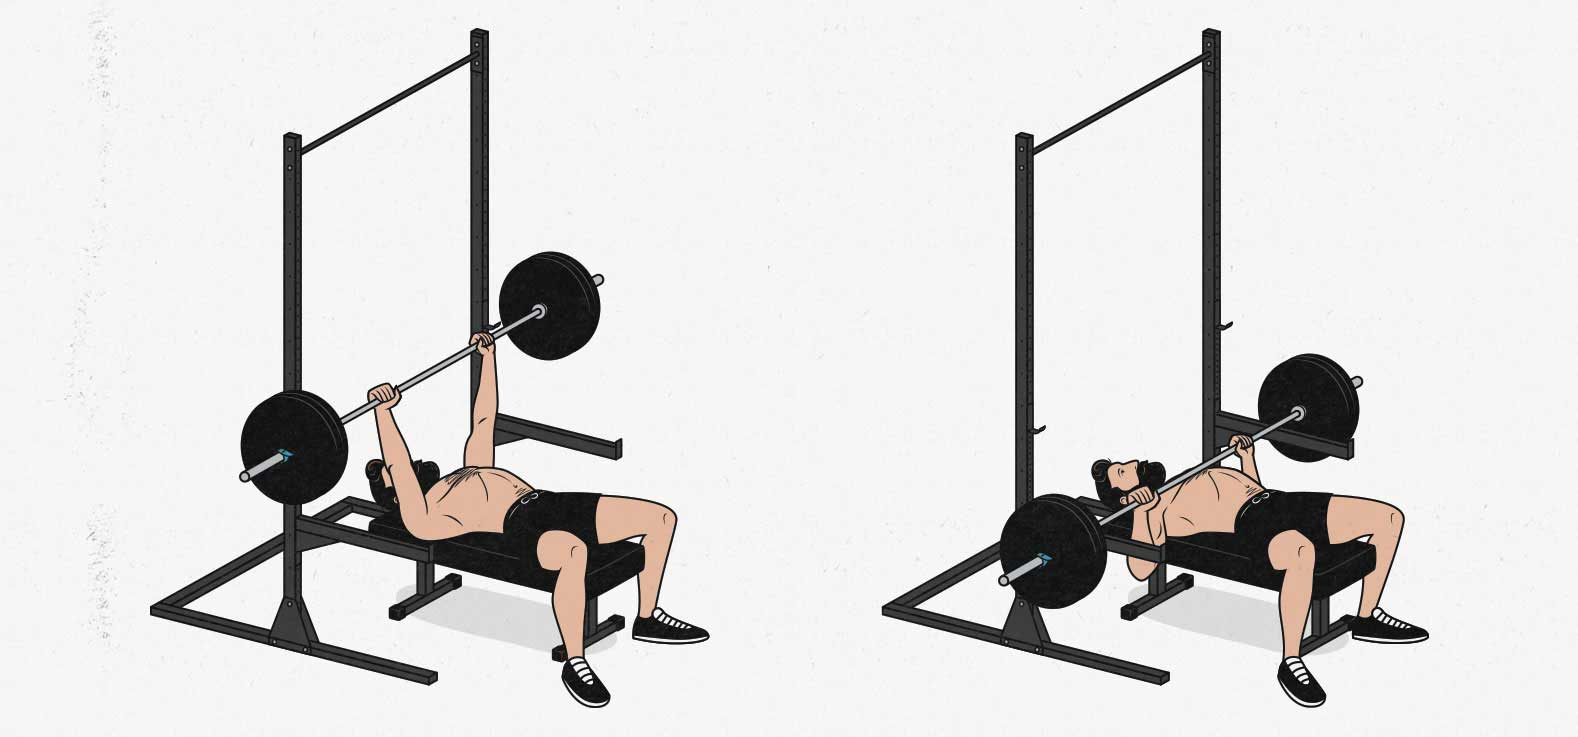 How to bench press safely in a barbell home gym without a spotter using a squat stand or power cage